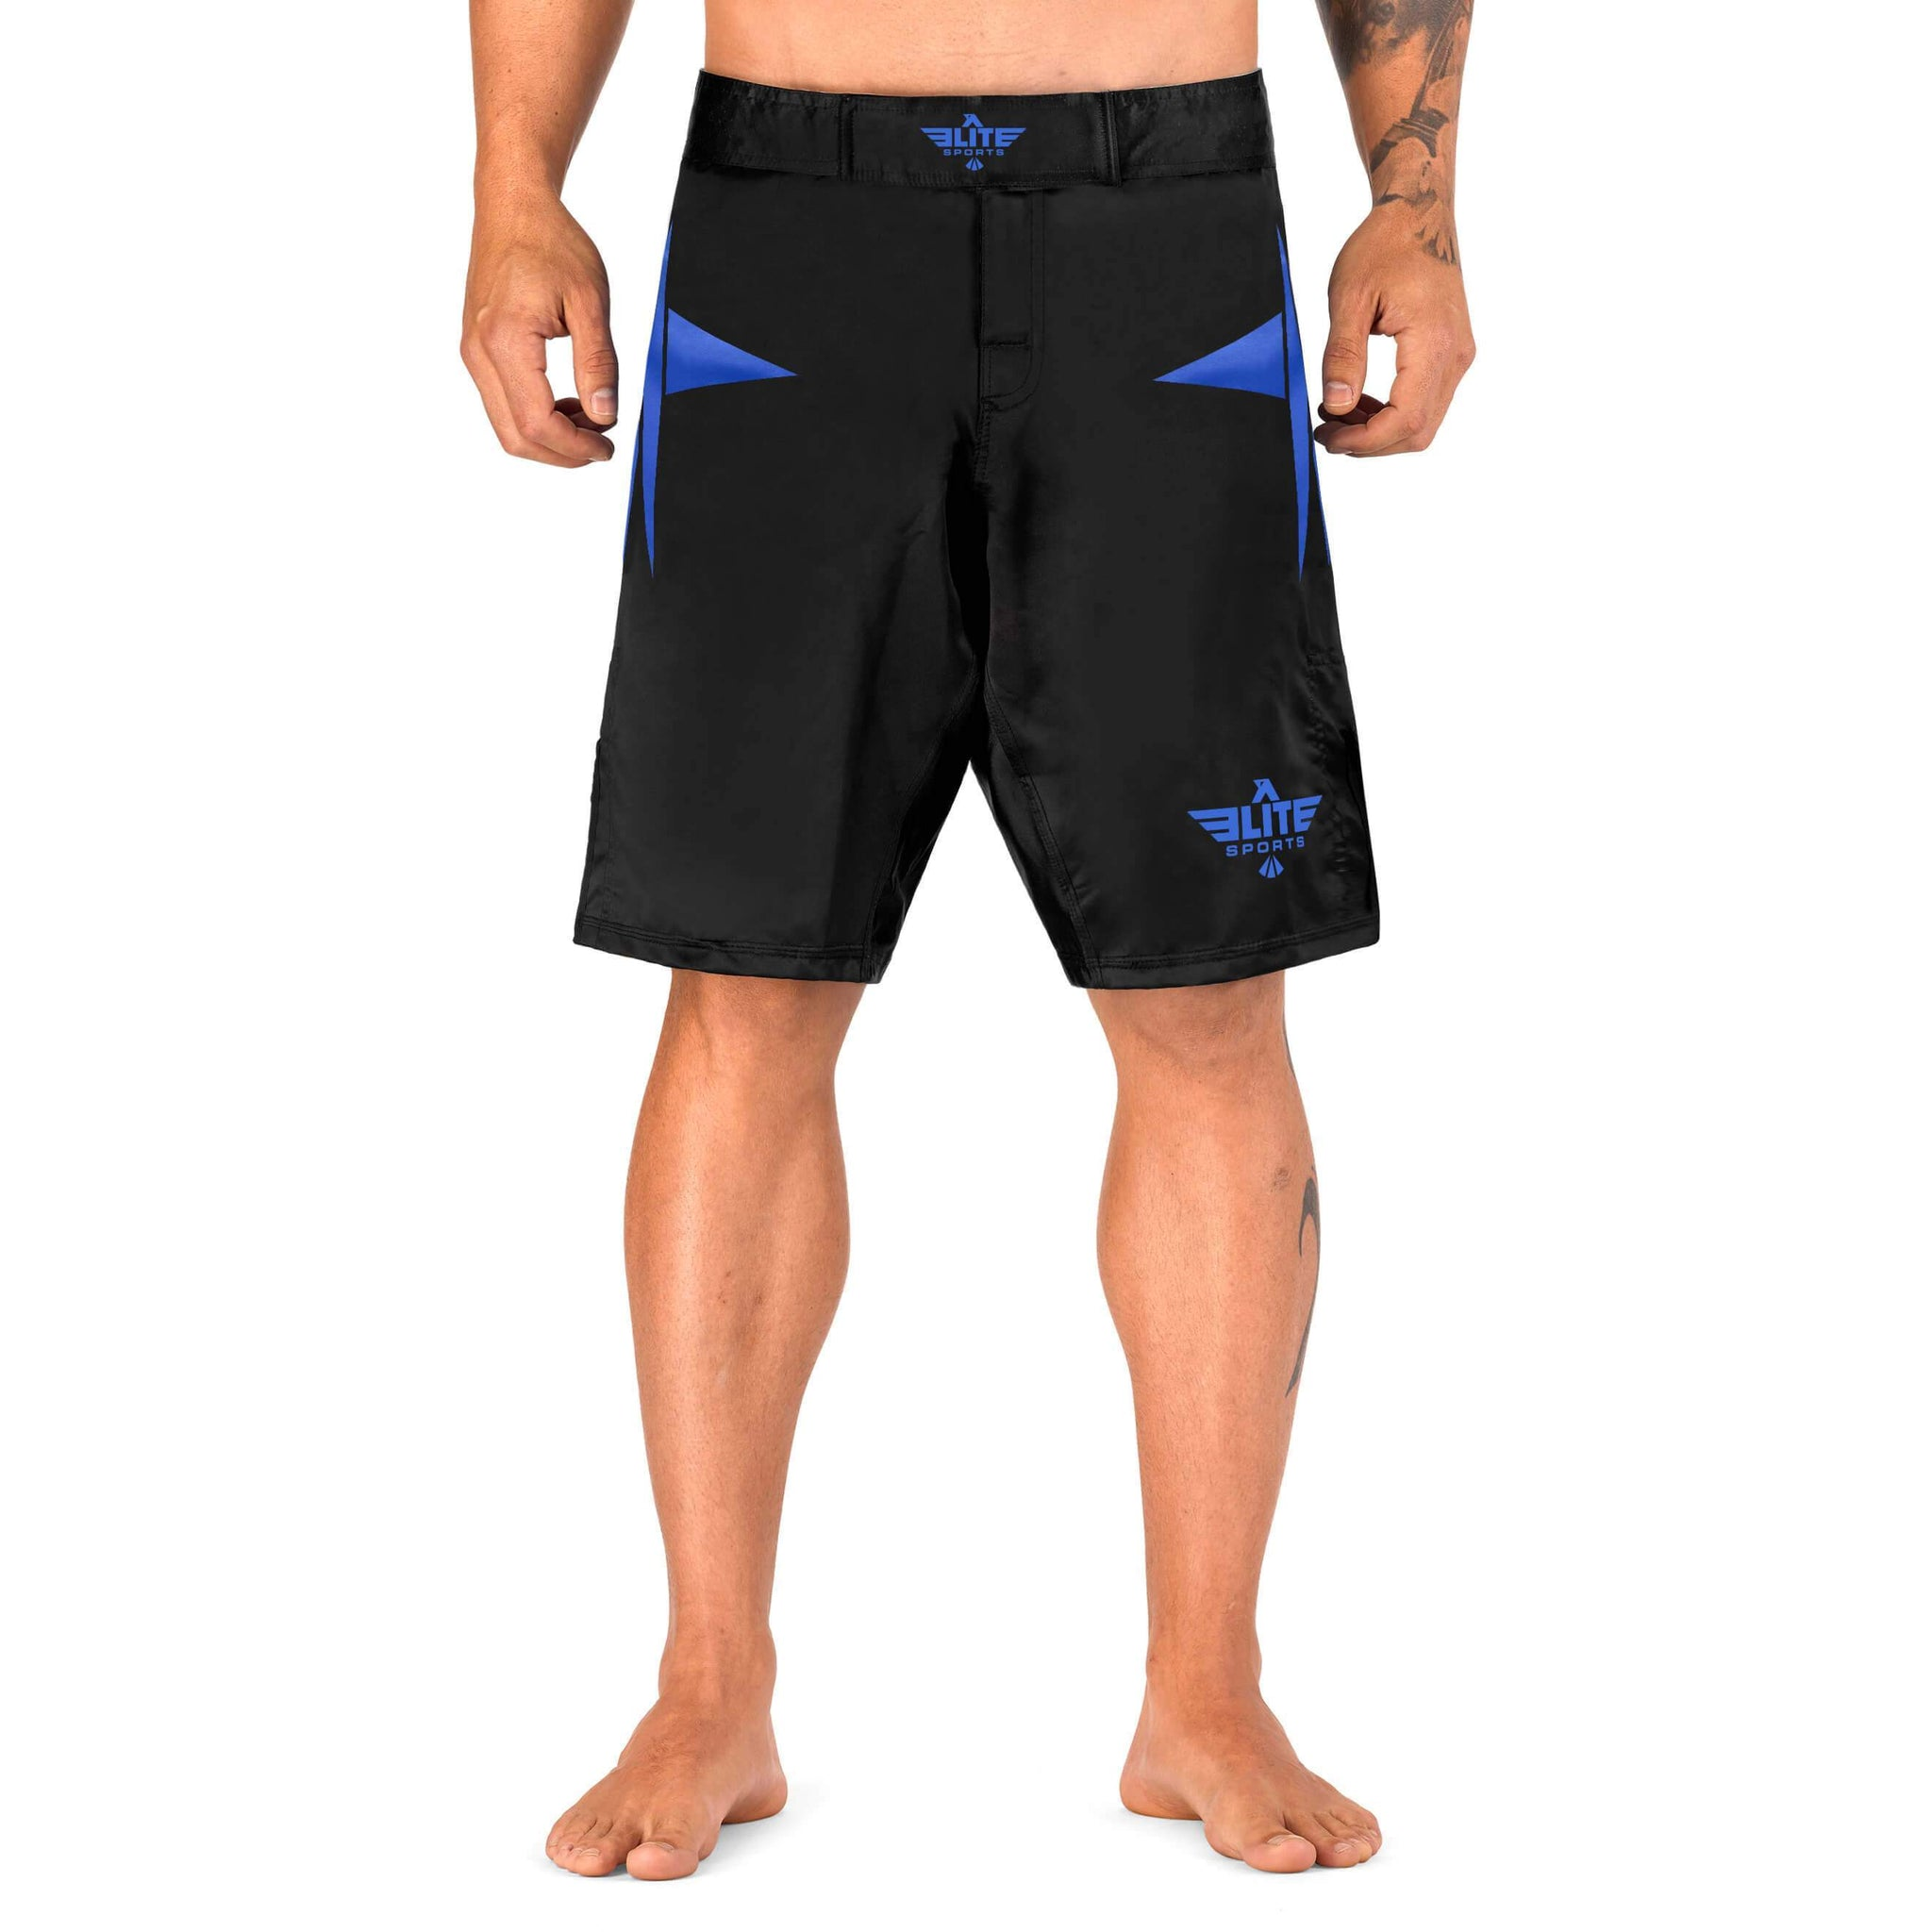 Load image into Gallery viewer, Elite Sports Star Series Sublimation Black/Blue MMA Shorts